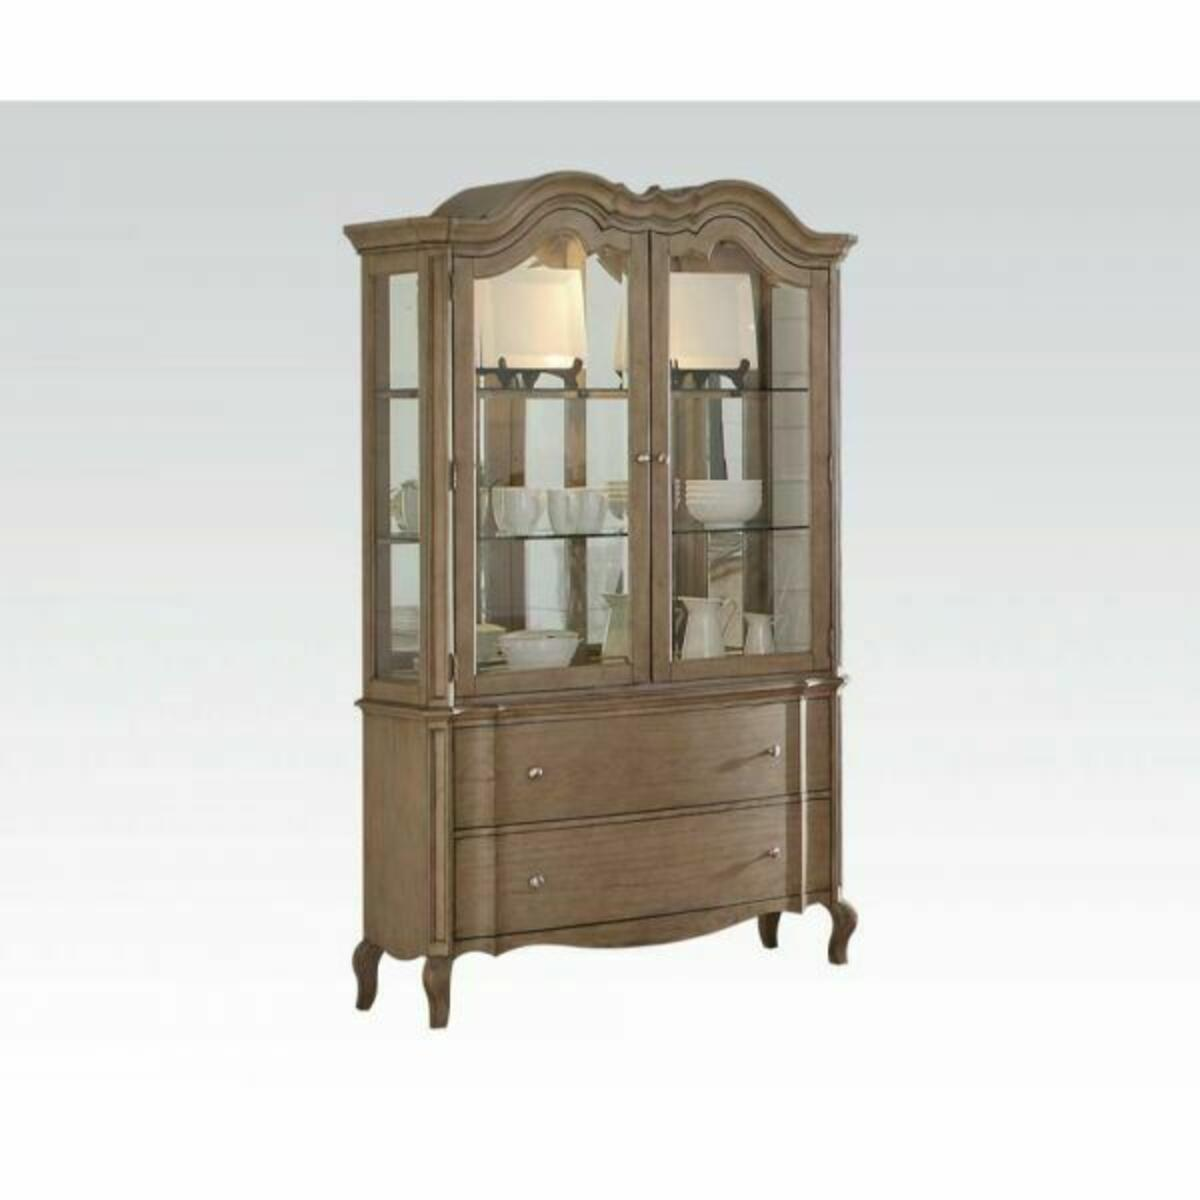 ACME Chelmsford Hutch & Buffet - 66054 - Antique Taupe